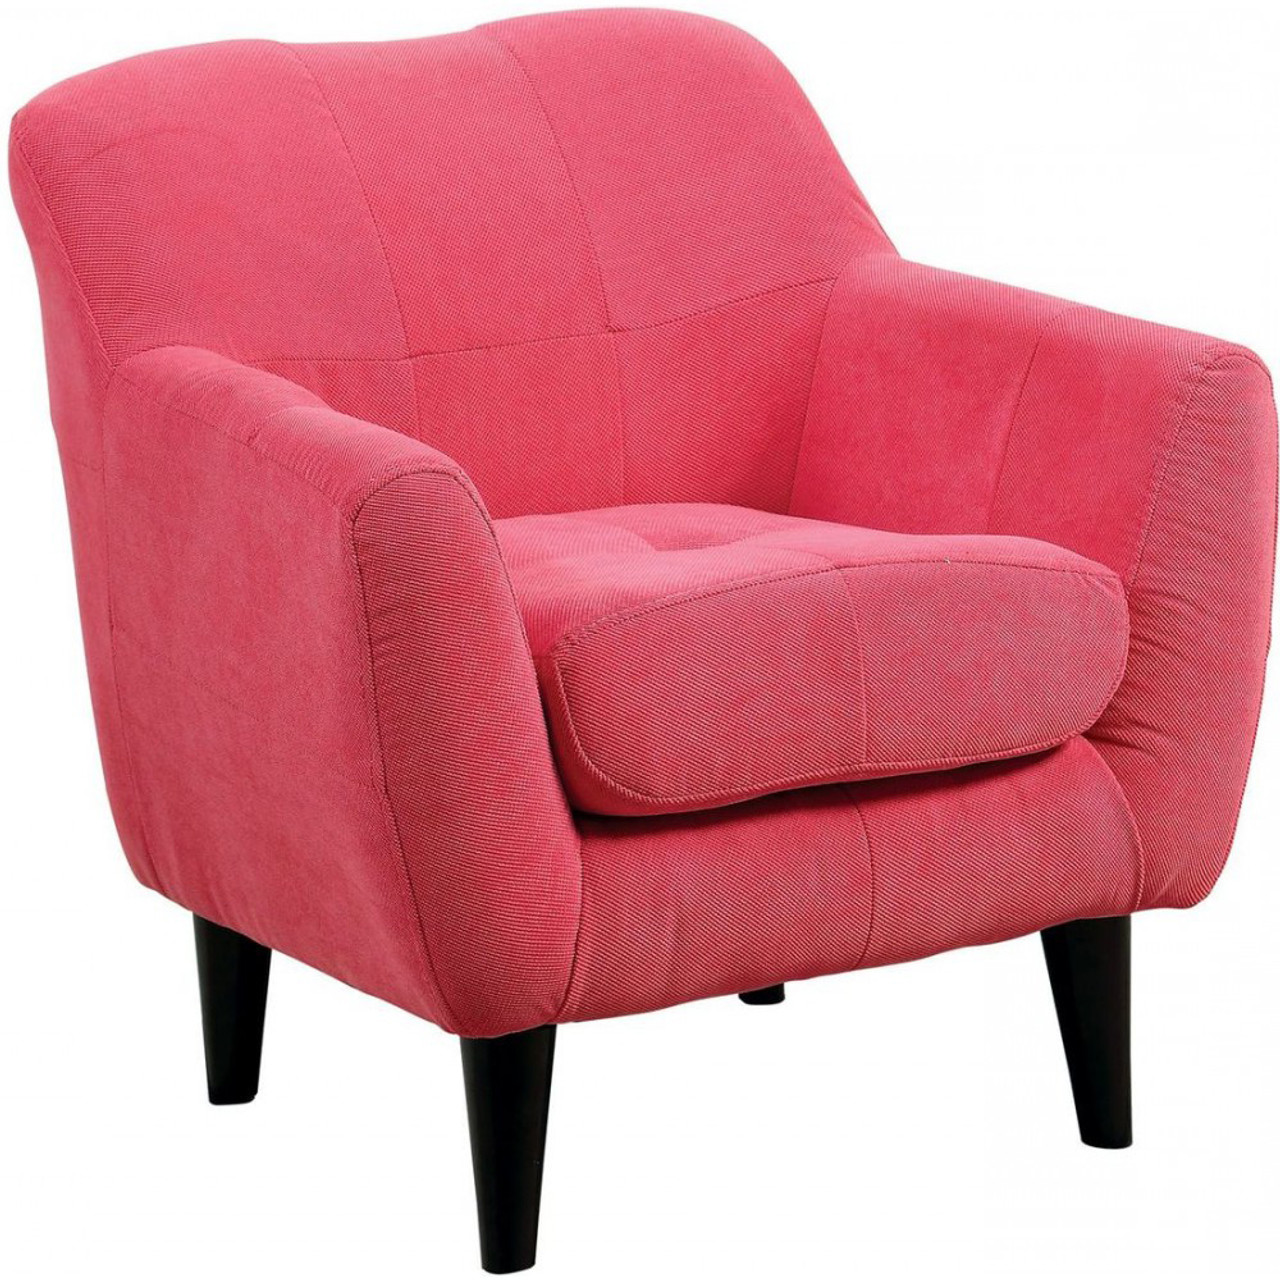 Wondrous Callyr Pink Kids Chair Gmtry Best Dining Table And Chair Ideas Images Gmtryco